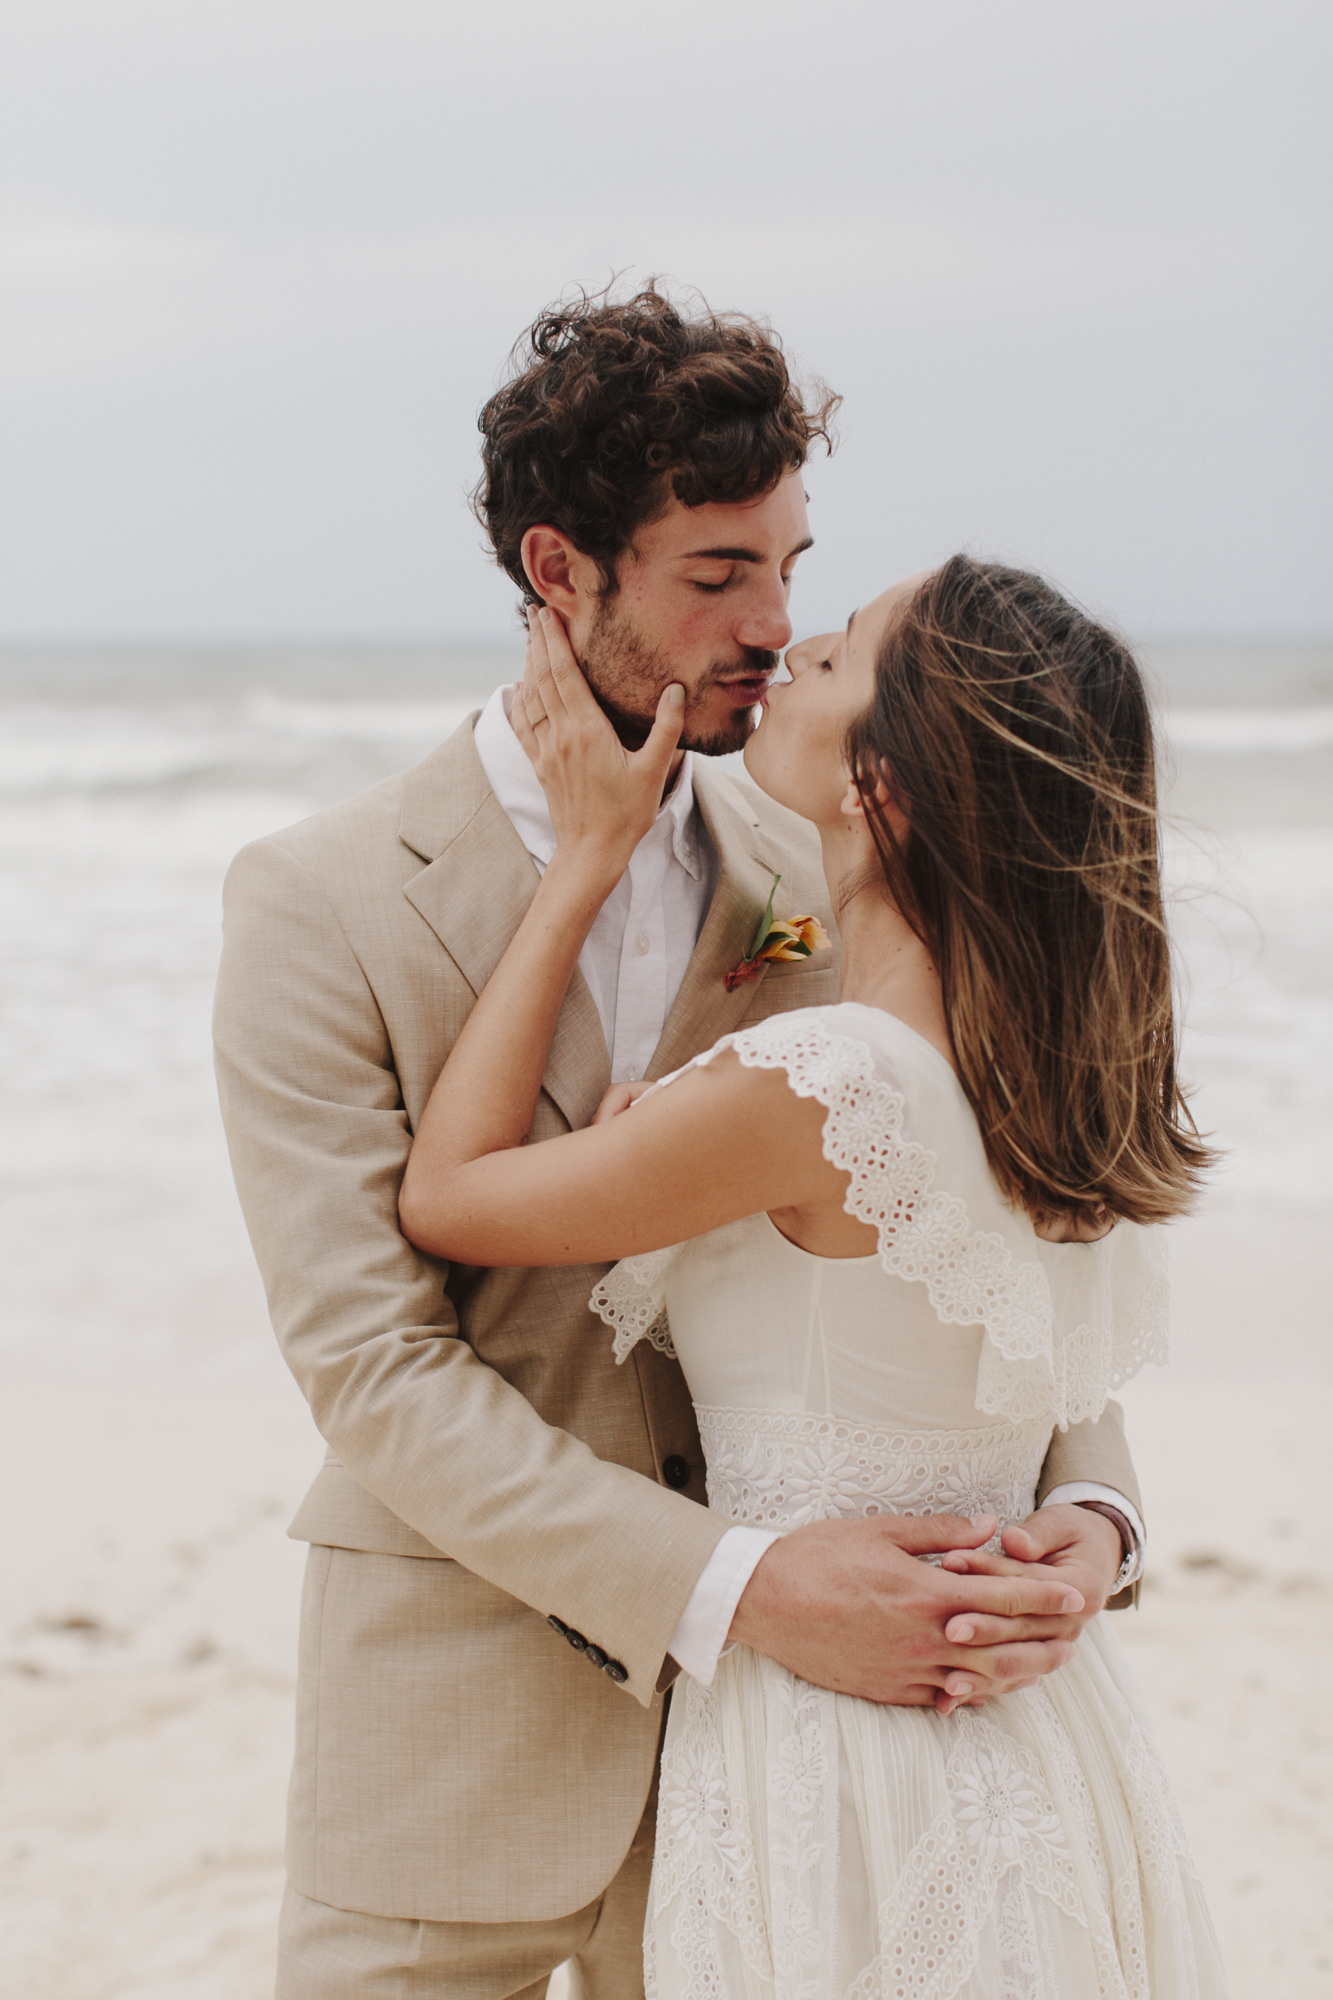 Romantic photo of couple kissing on beach by James Moes